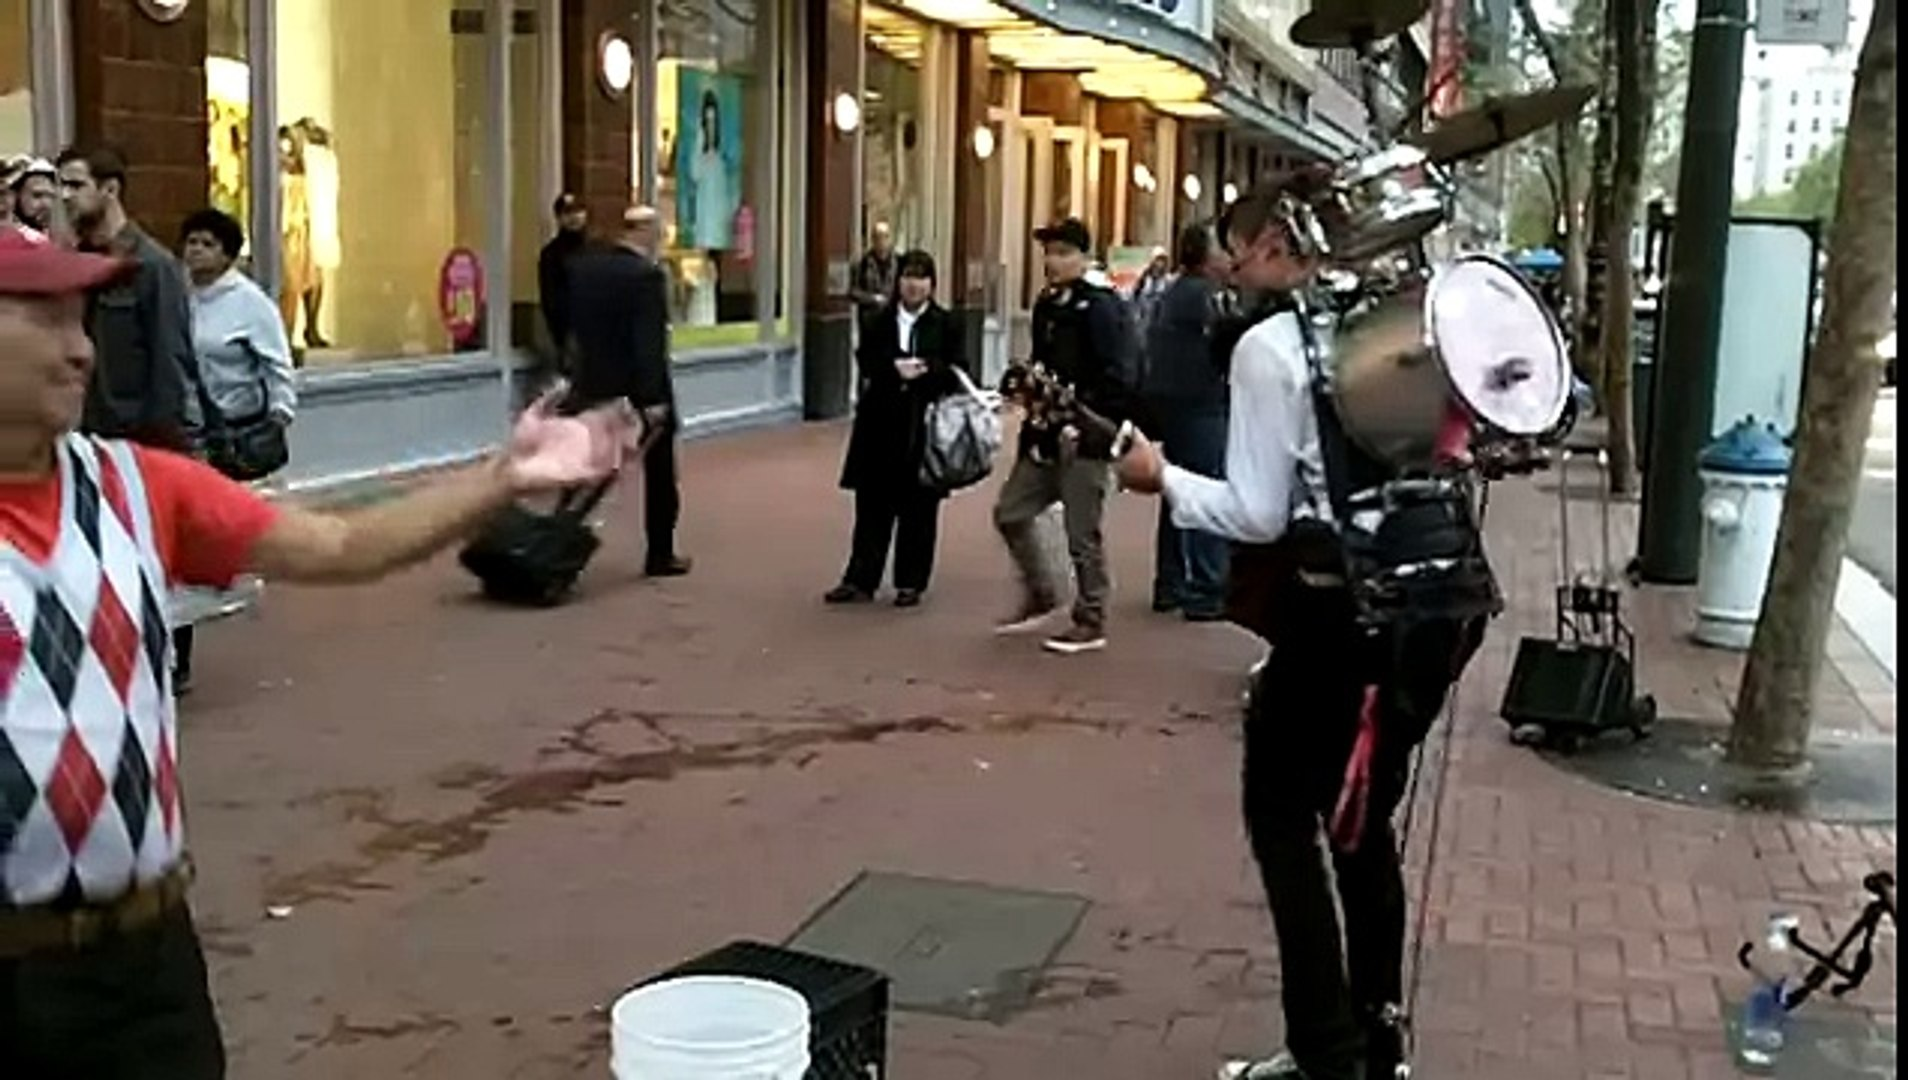 Excellent Street Musician in the City of San Francisco - One Man Band